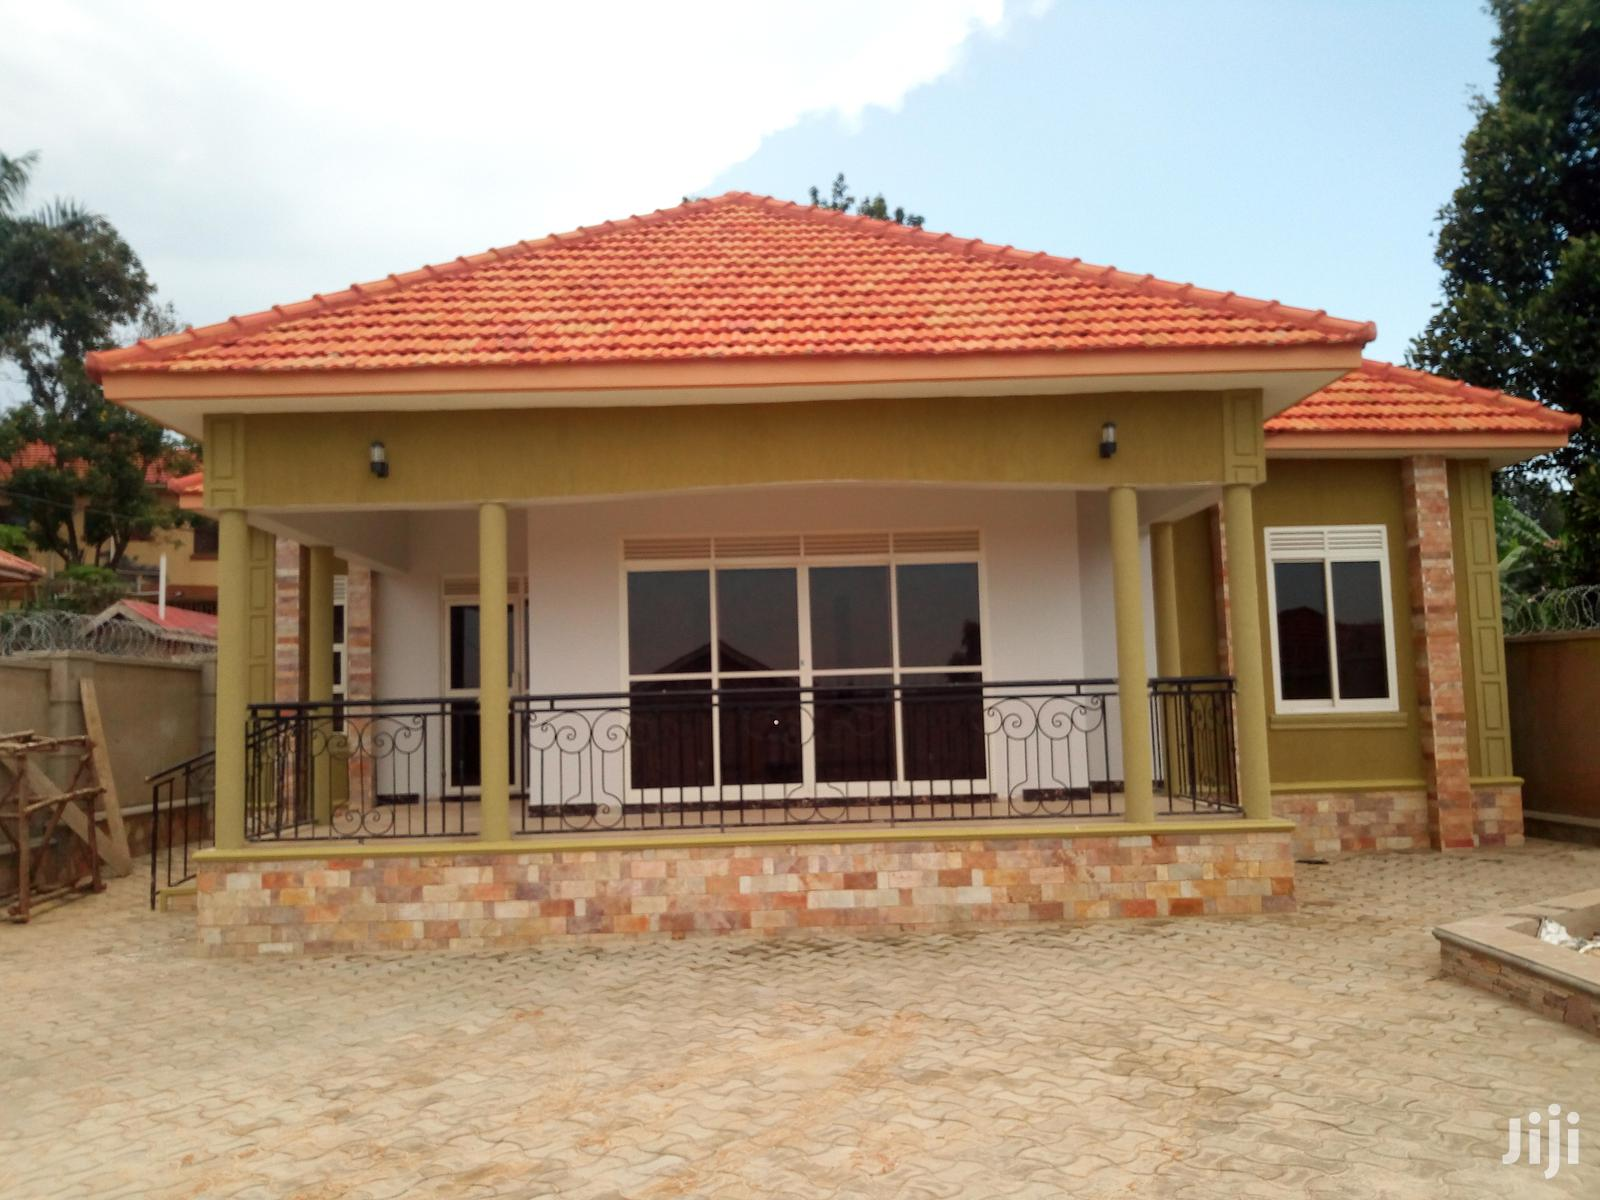 Archive: On Sale In Kira::4bedrooms,4bathrooms,On 12decimals